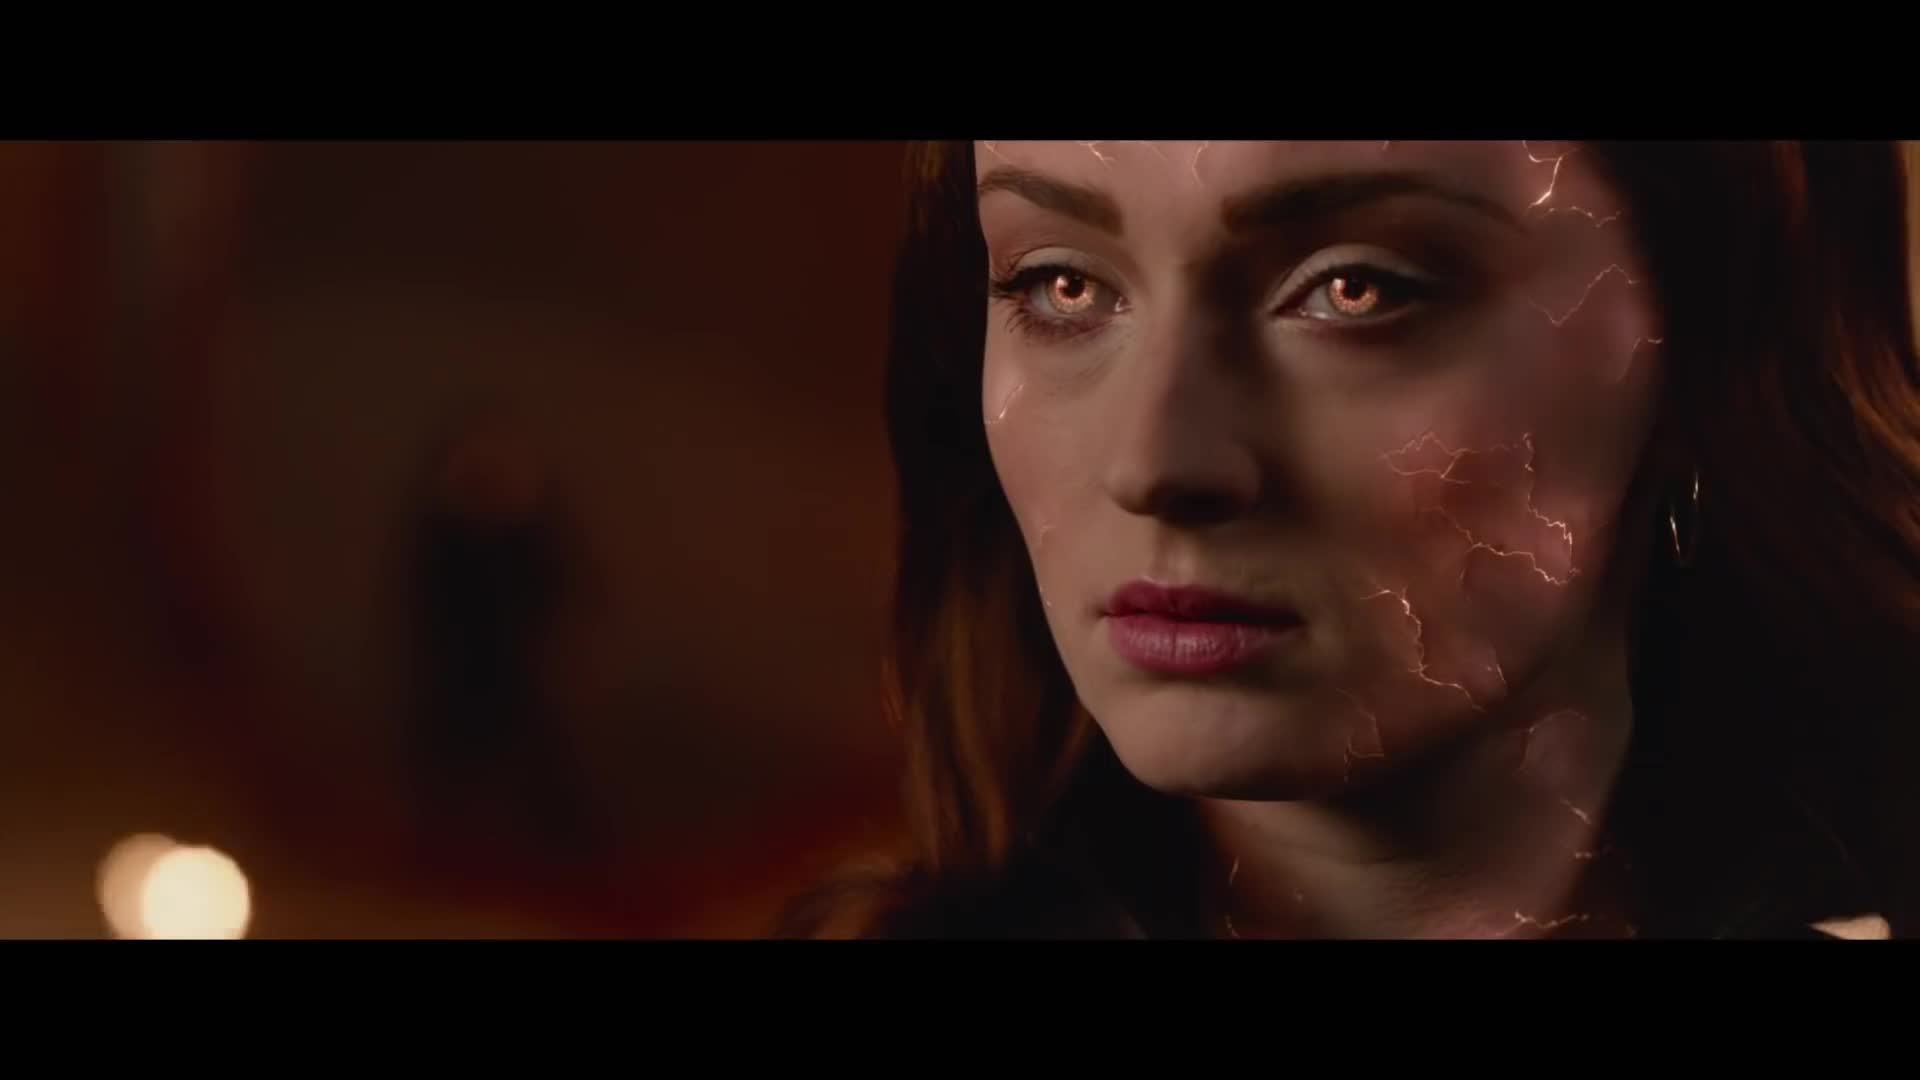 Trailer, Kino, Kinofilm, Marvel, 20th Century Fox, X-Men, X-Men: Dark Phoenix, Dark Phoenix